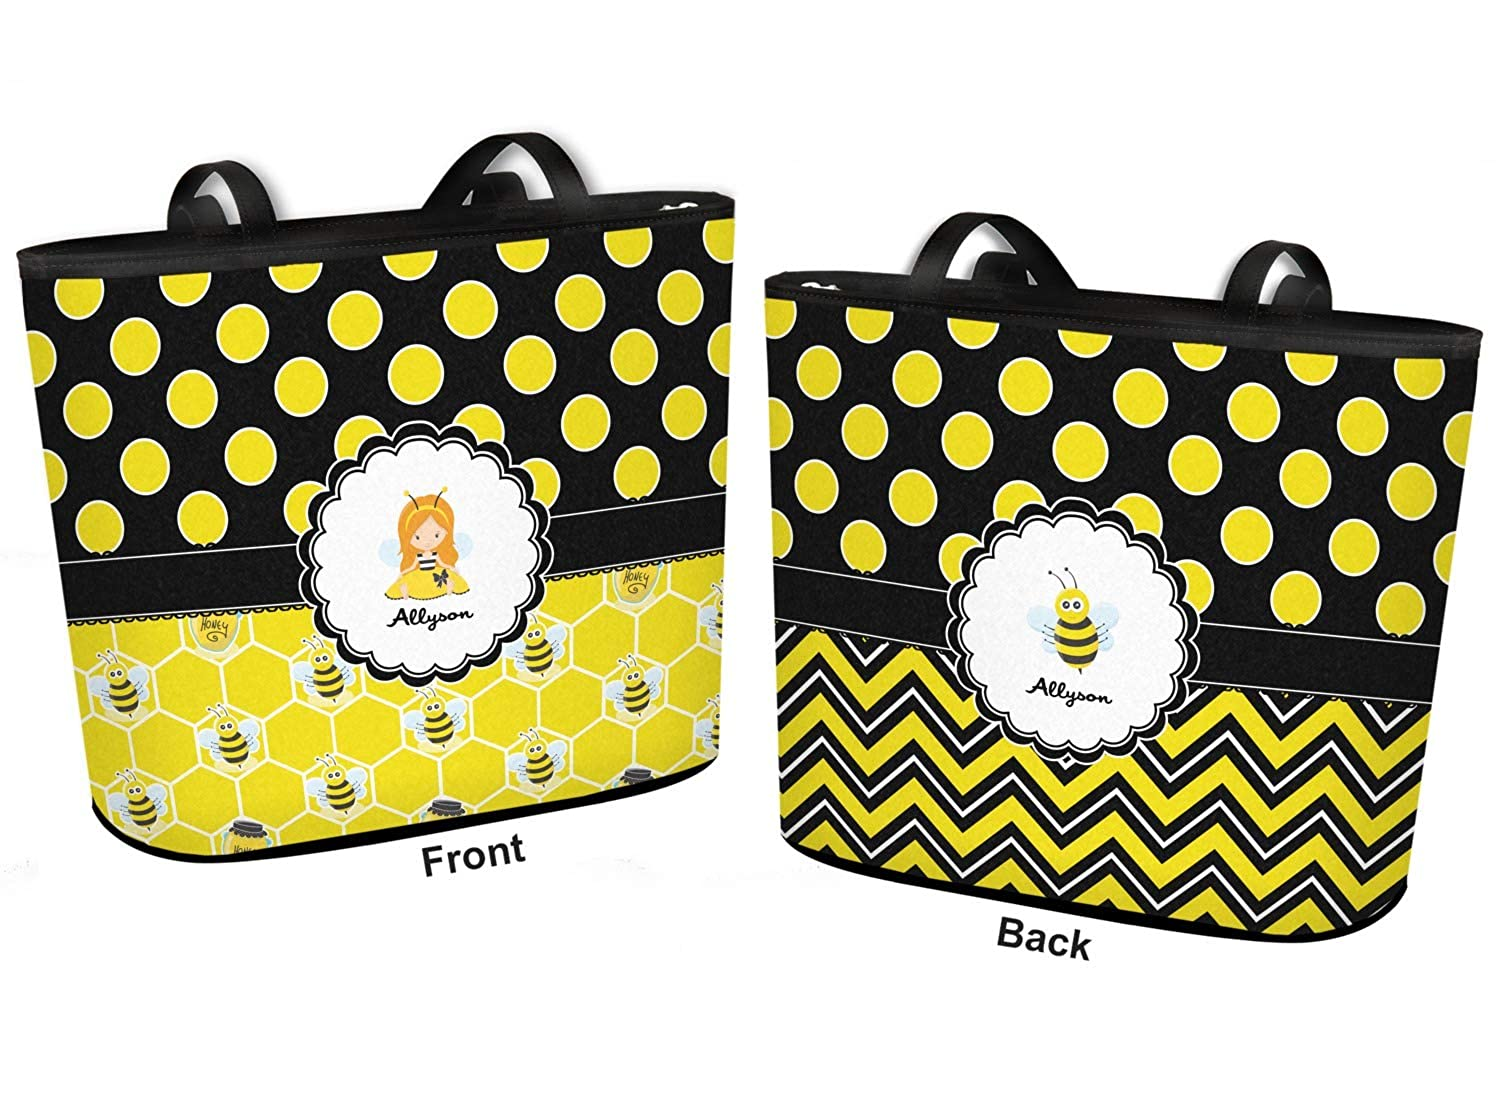 Honeycomb Large w//Front /& Back Design Personalized Bees /& Polka Dots Bucket Tote w//Genuine Leather Trim